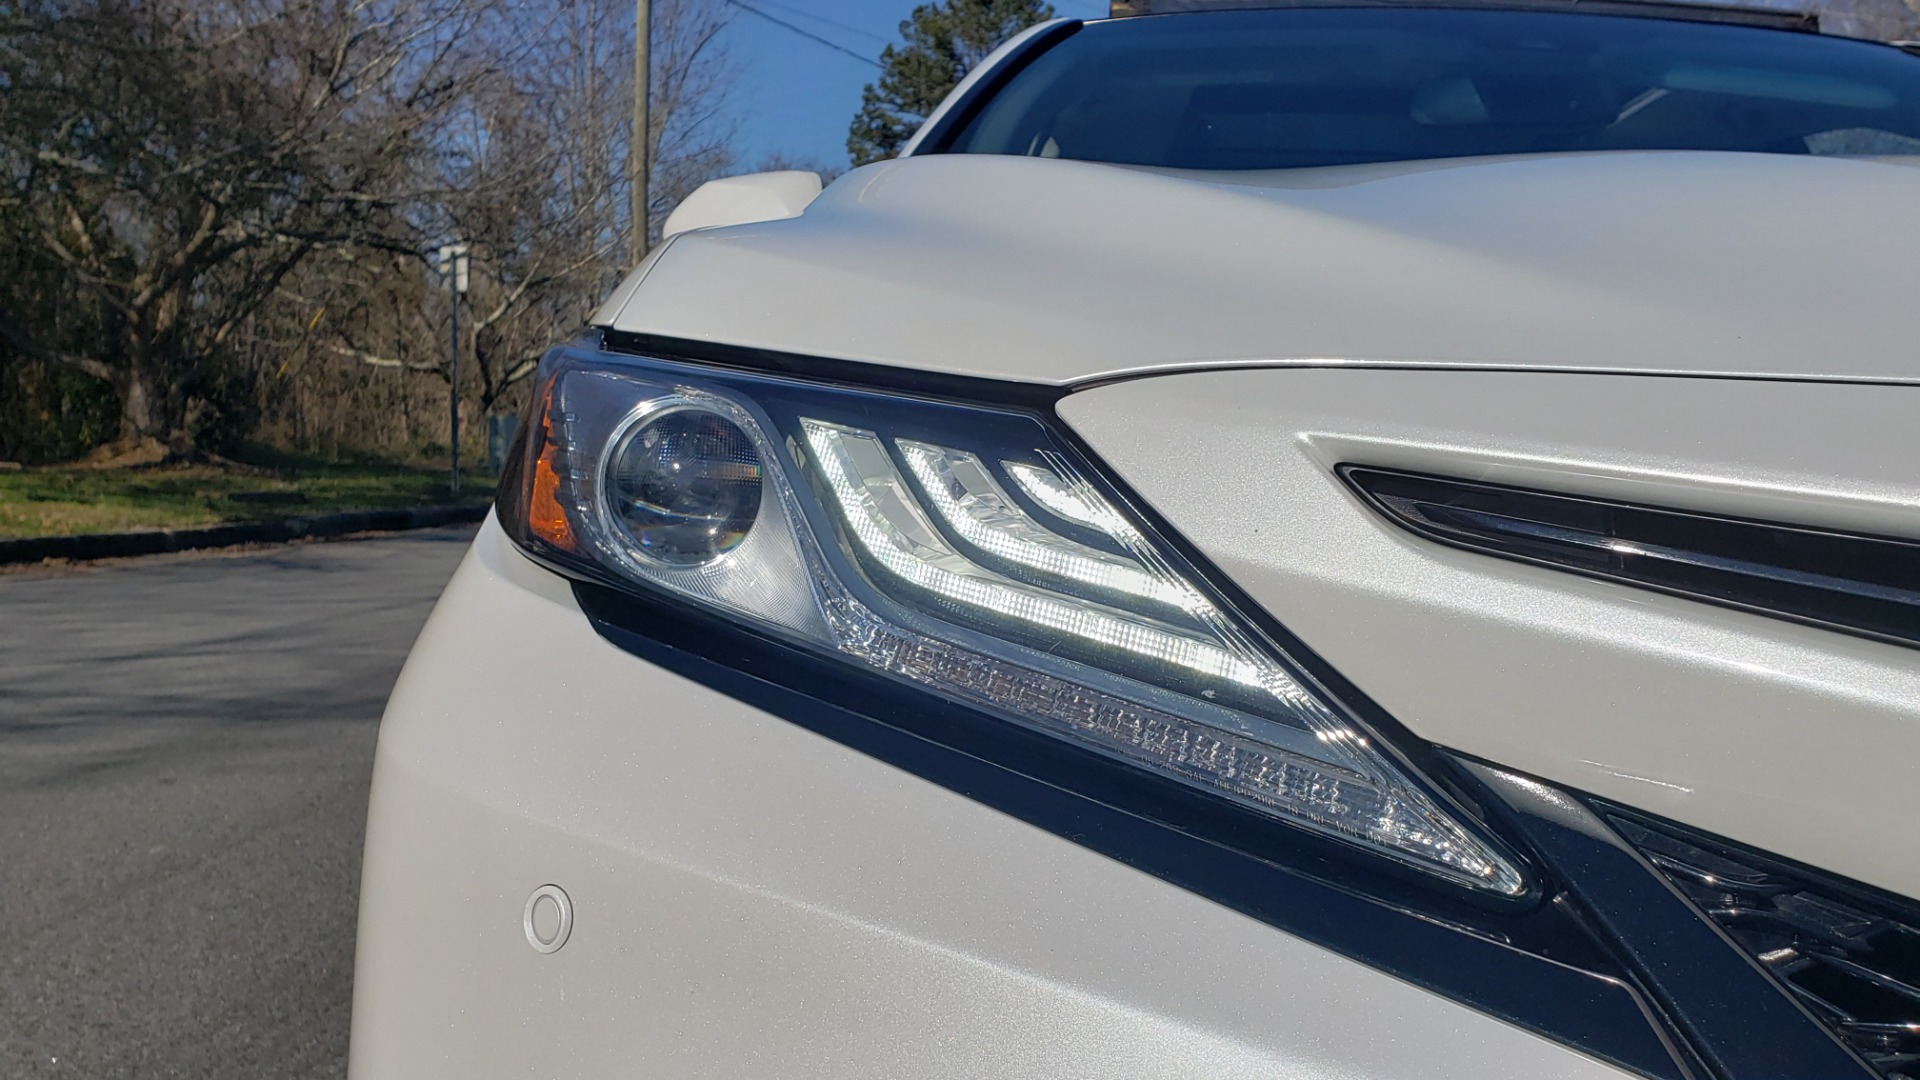 Used 2018 Toyota CAMRY XSE 2.5L SEDAN / 8-SPD AUTO / PANO-ROOF / 19IN WHEELS for sale $22,995 at Formula Imports in Charlotte NC 28227 19